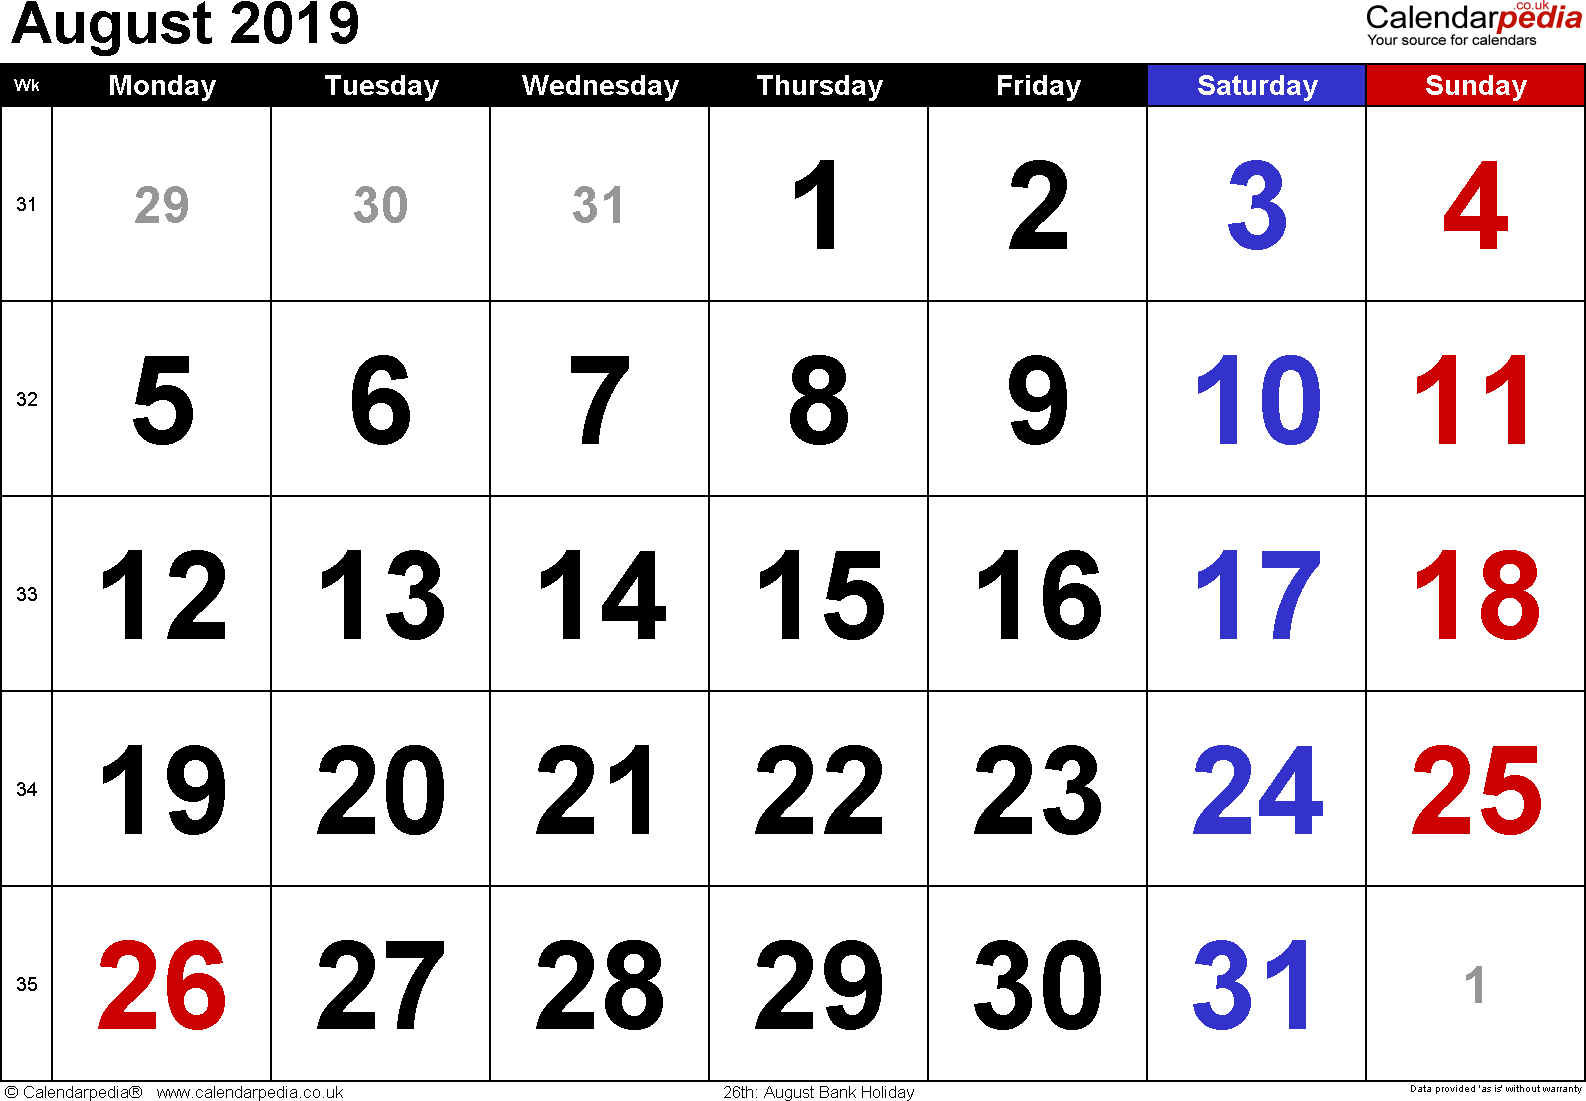 Calendar August 2019, landscape orientation, large numerals, 1 page, with UK bank holidays and week numbers